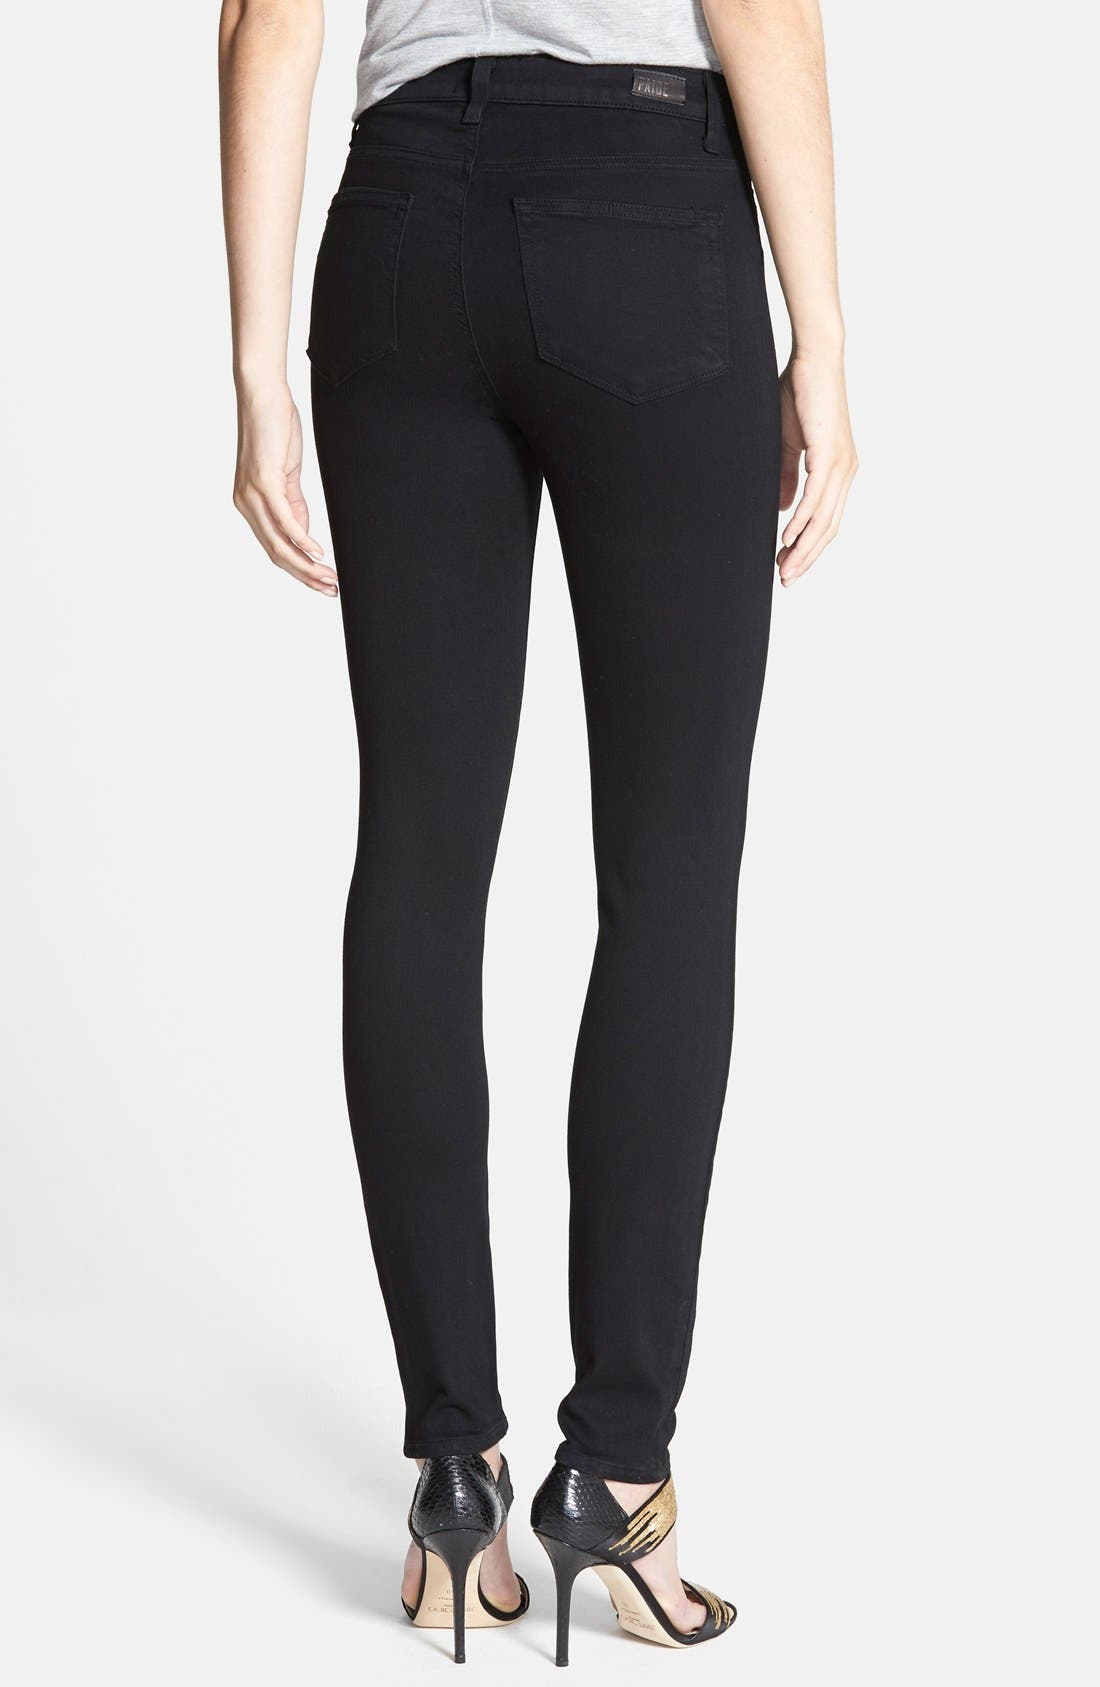 Transcend - Margot High Waist Ultra Skinny Jeans,                             Alternate thumbnail 2, color,                             BLACK SHADOW